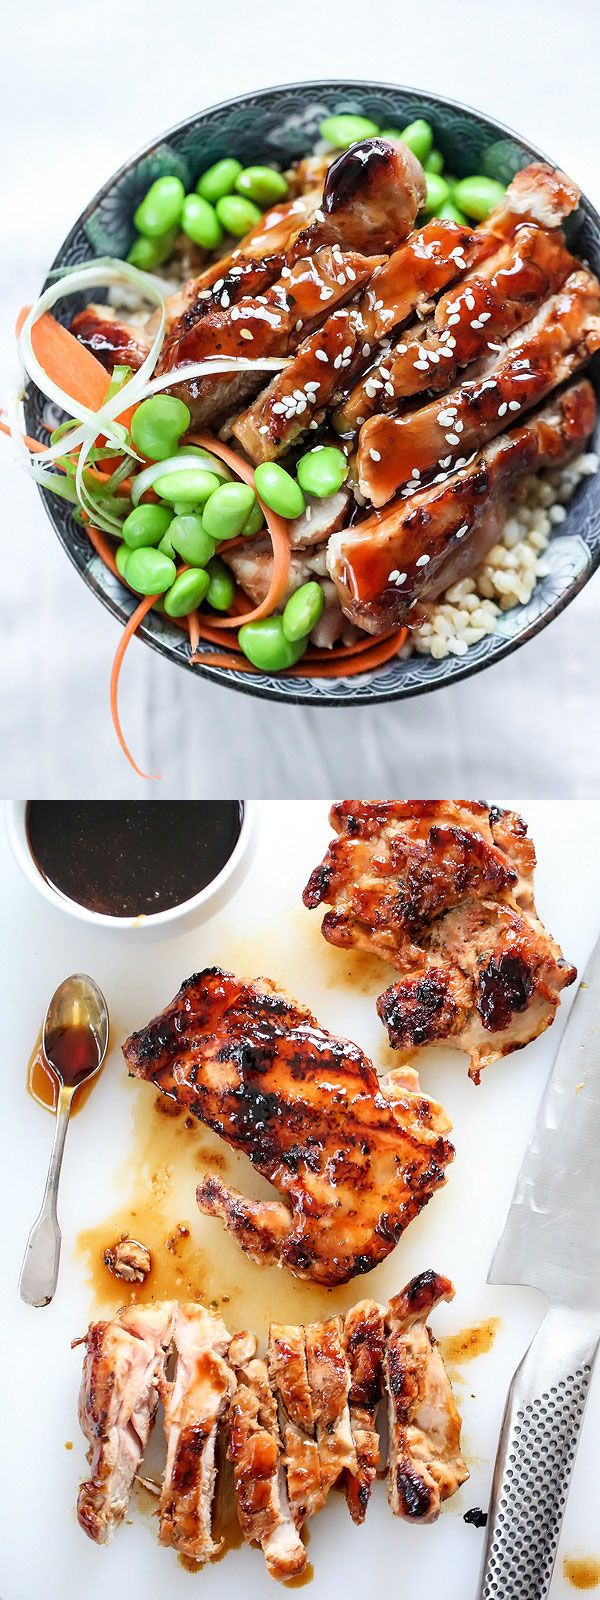 My Teriyaki Chicken Rice Bowls are a one bowl meal complete with brown rice and moist grilled chicken thighs   foodiecrush.com